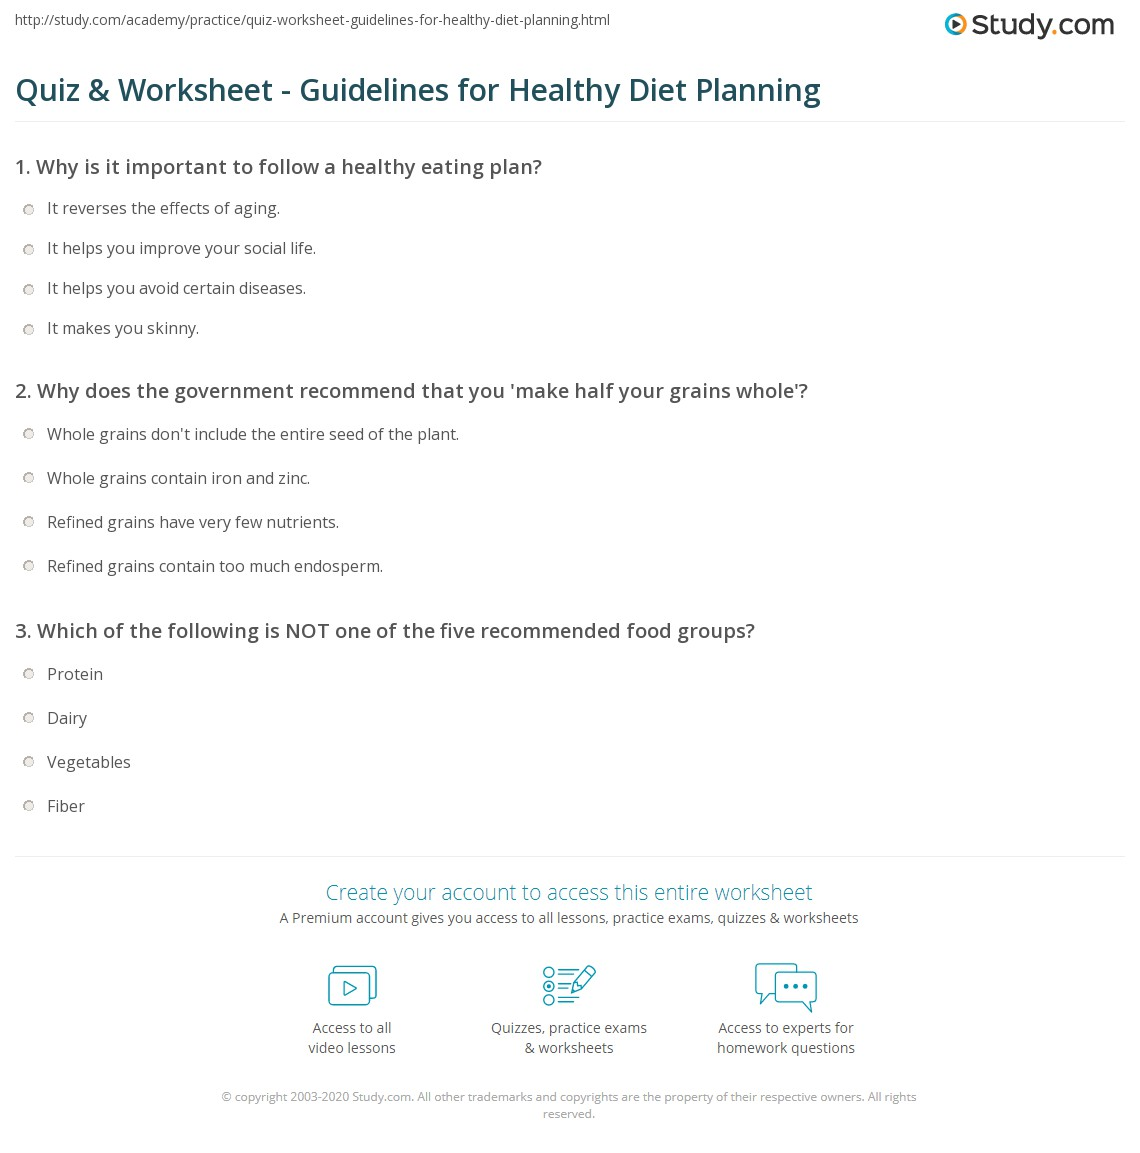 worksheet Healthy Eating Worksheets quiz worksheet guidelines for healthy diet planning study com print nutrients food groups worksheet